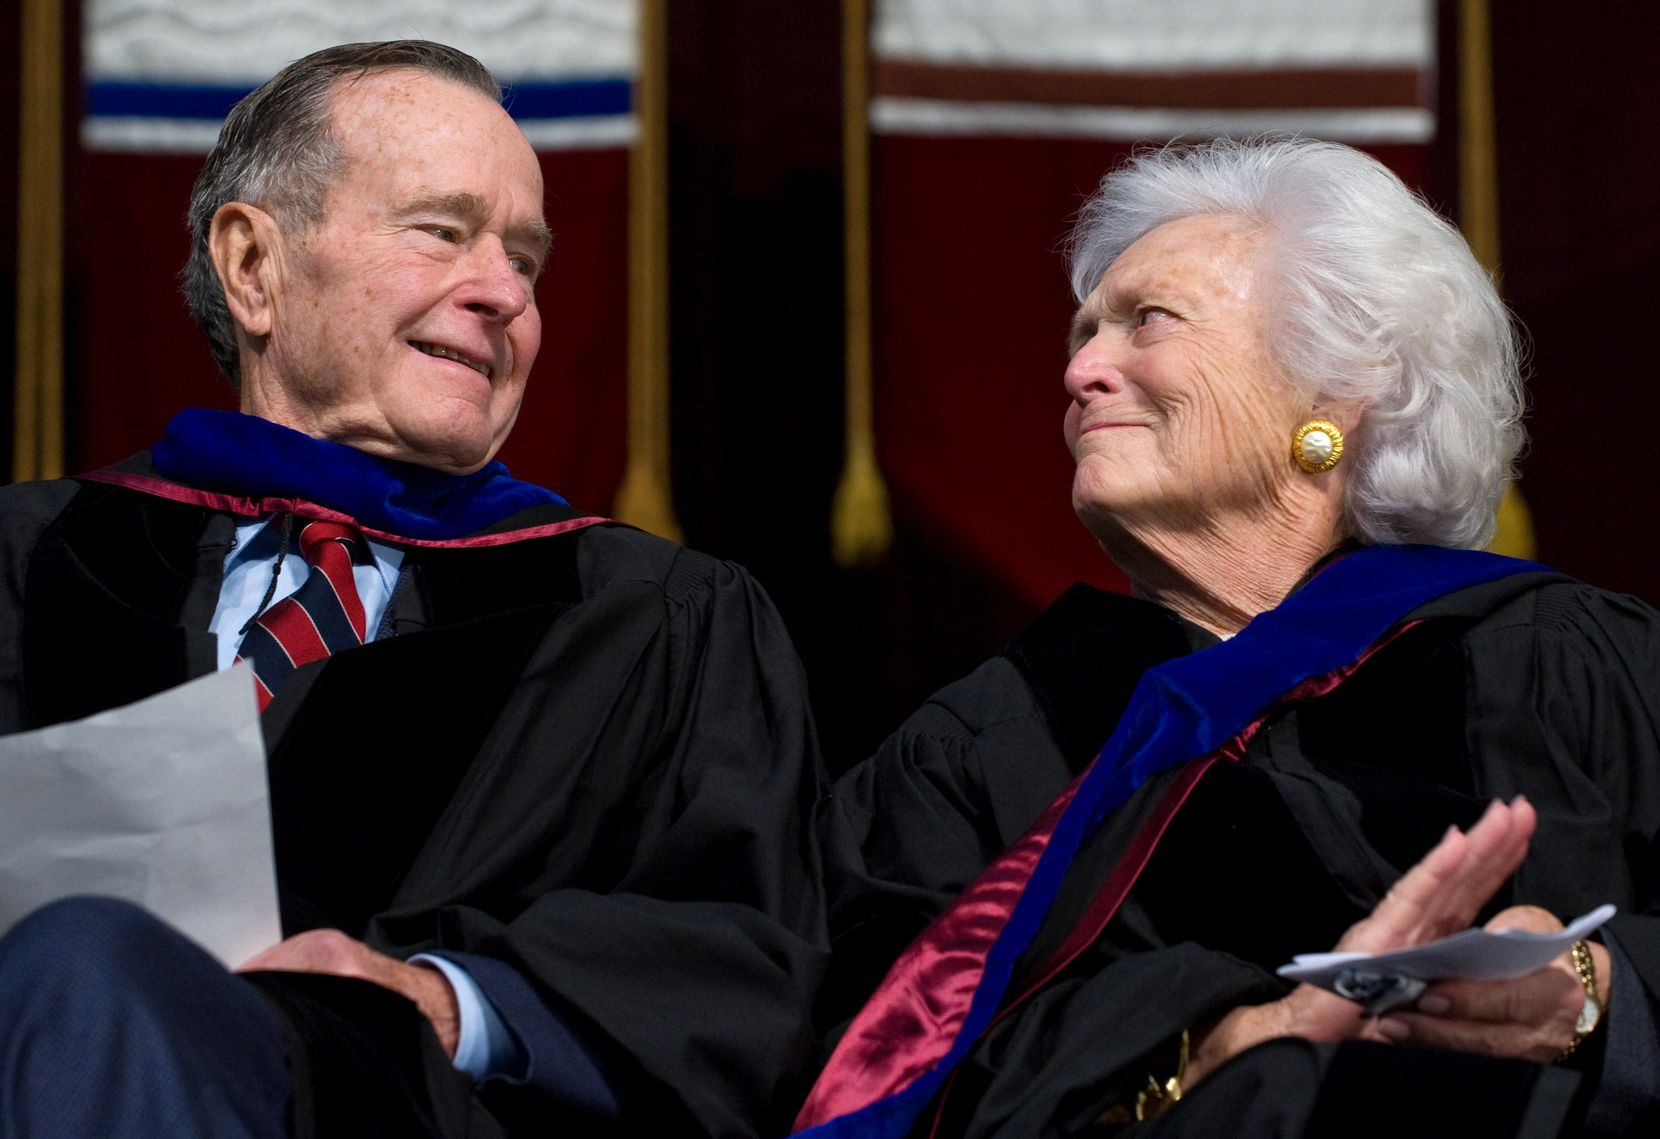 Barbara Bush and her husband, former President George H.W. Bush, attended the December 2008 Texas A&M University graduation ceremony in College Station, where their son, President George W. Bush, delivered the commencement address.